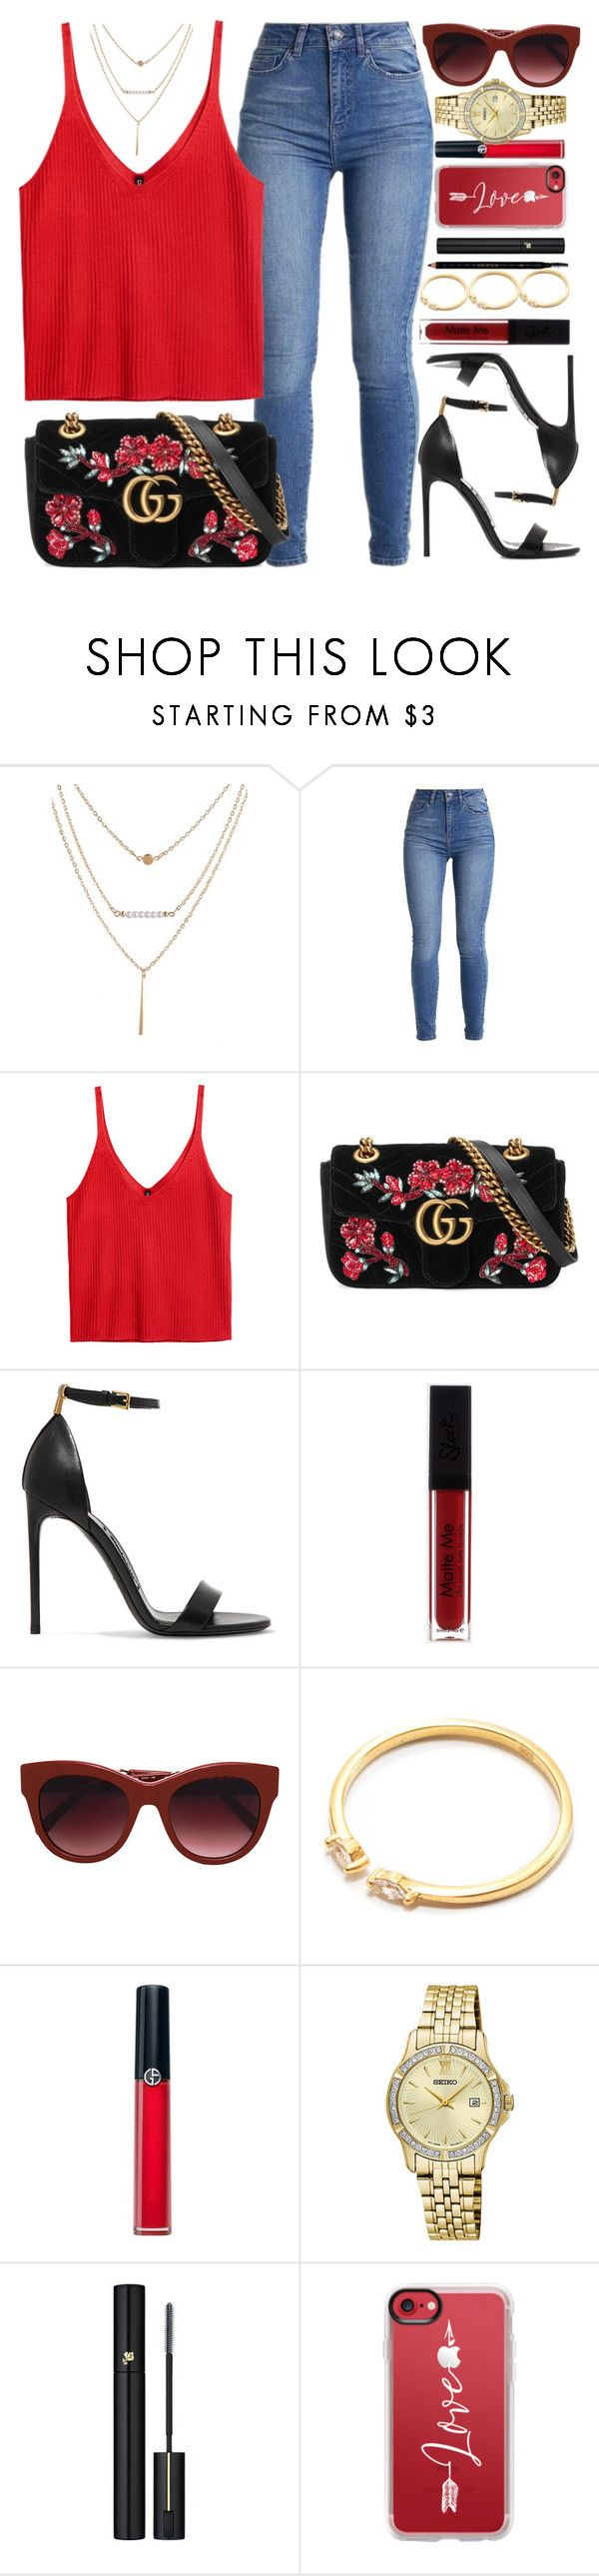 """""""Marseille"""" by monmondefou ❤ liked on Polyvore featuring Gucci, Tom Ford, STELLA McCARTNEY, Armani Beauty, Seiko, Lancôme, Casetify and red"""